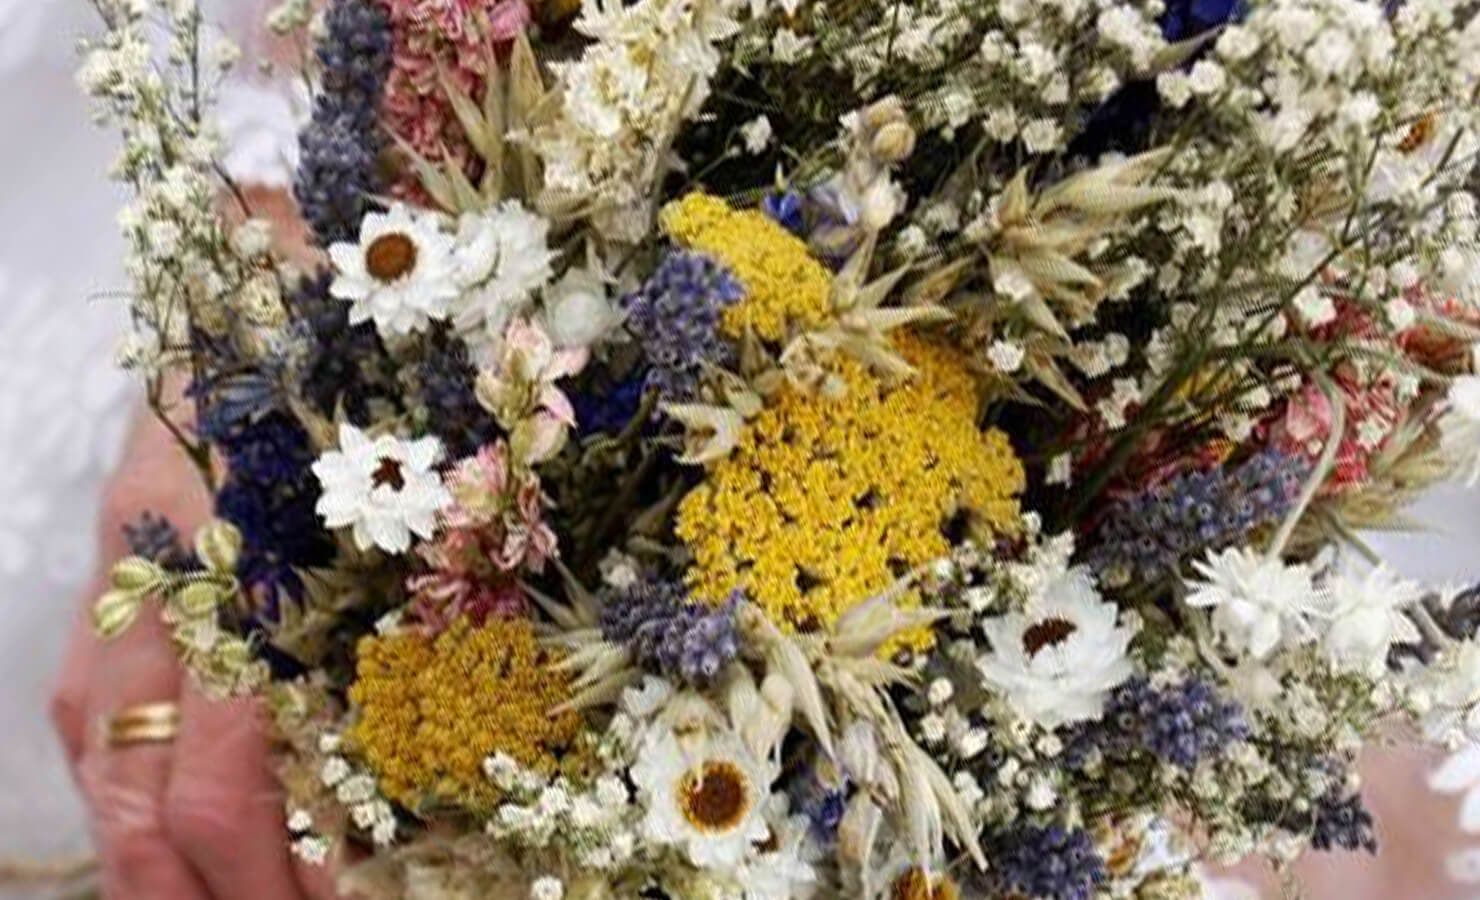 diy-dry-flower-bouquet-scent-with-essential-oils